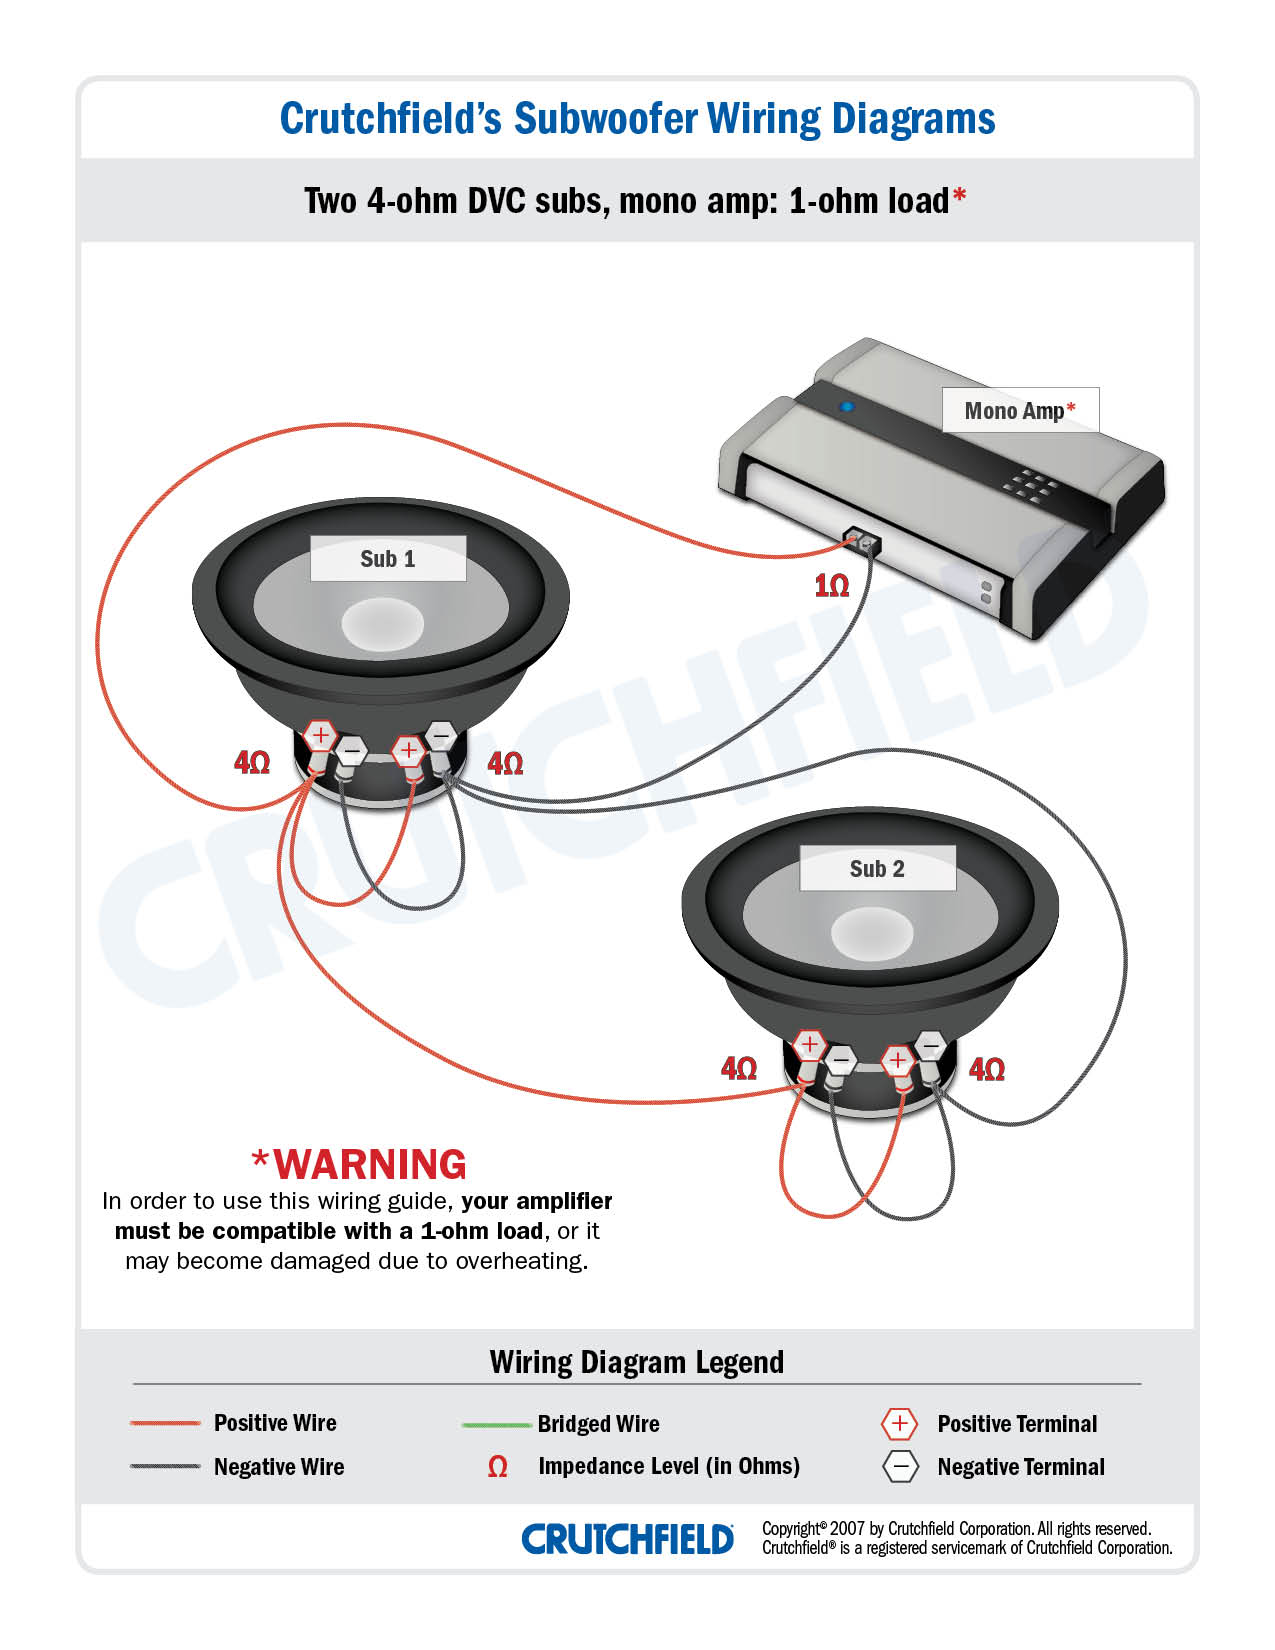 Subwoofer Wiring Diagrams How To Wire Your Subs Camera Tutorial Block Mono Tv This Diagram